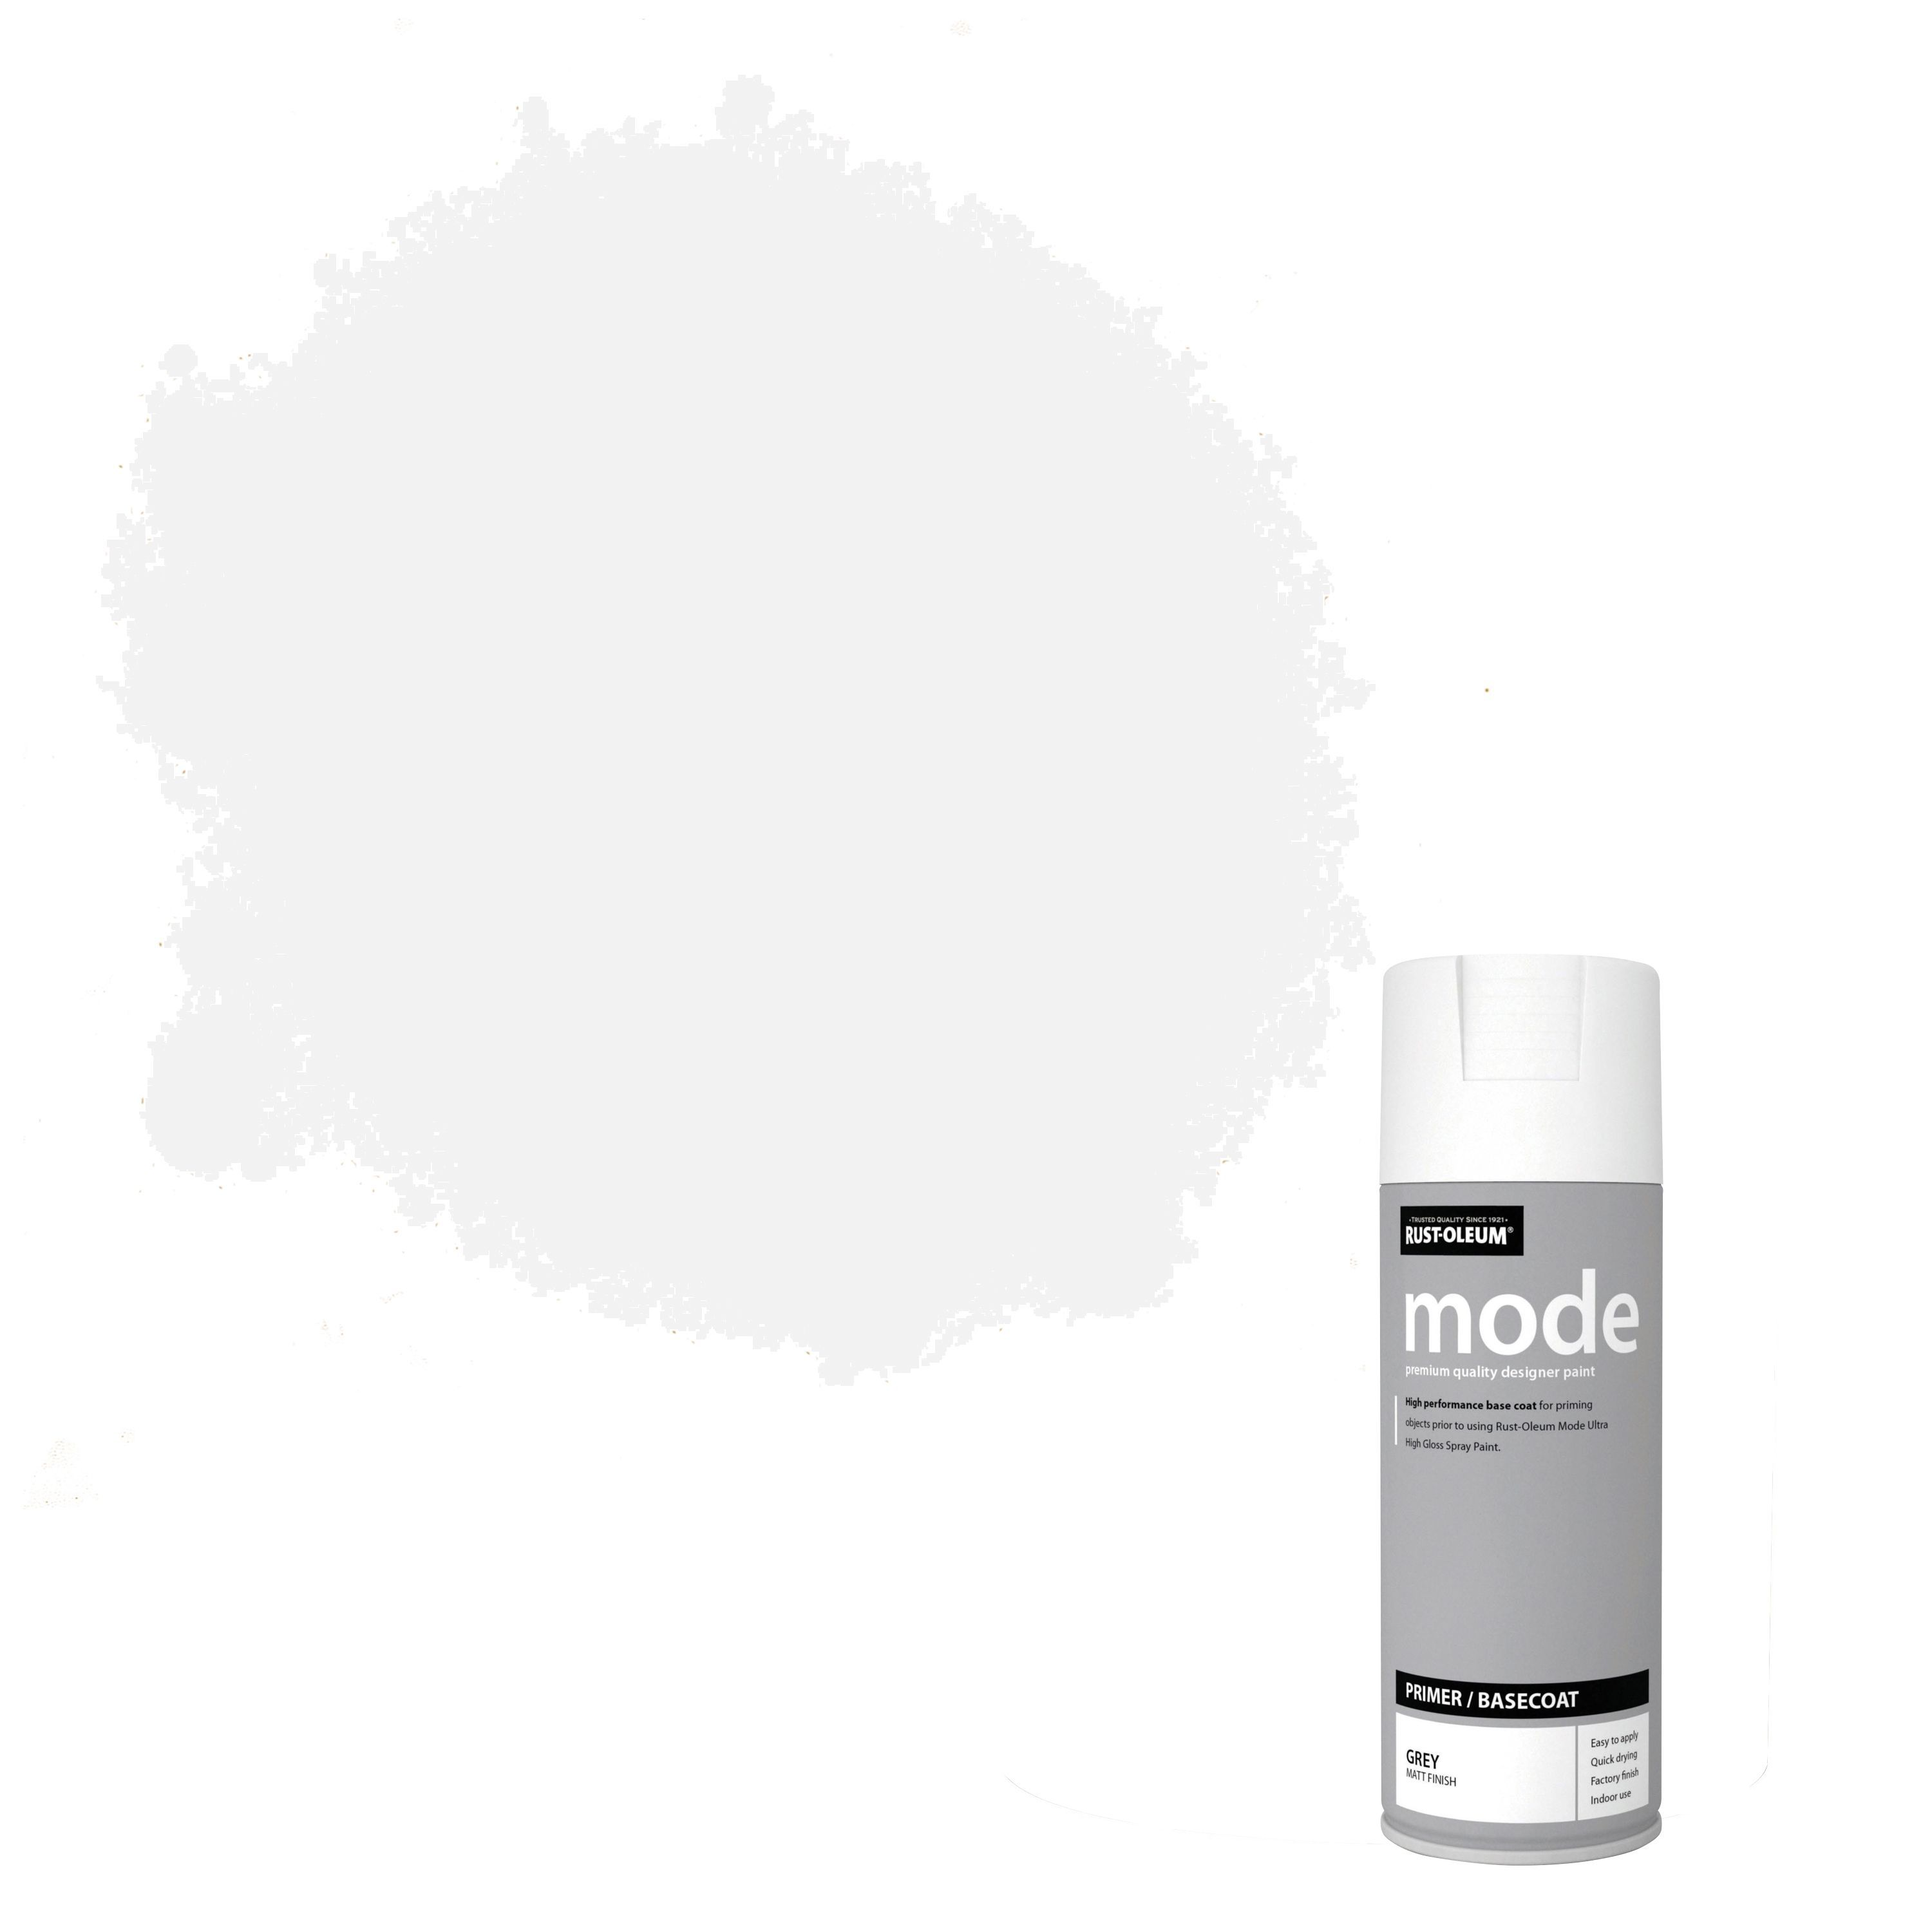 Rust-oleum Mode Grey Matt Surface Primer Spray Paint 400 Ml